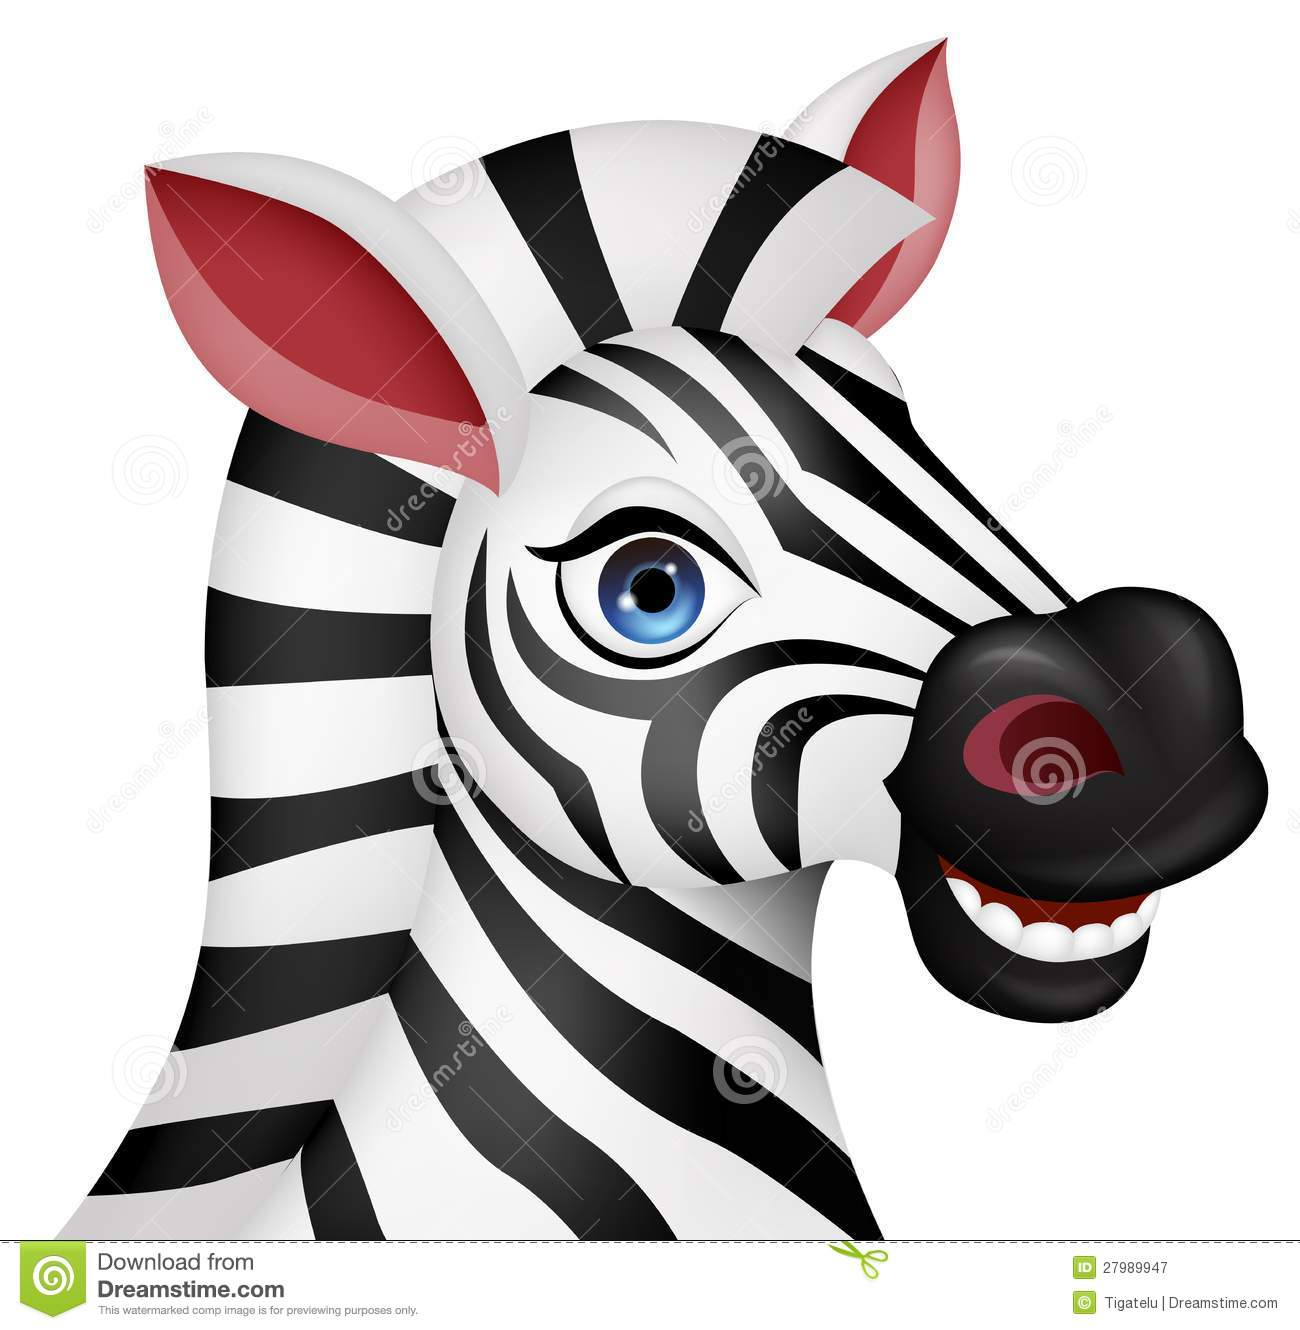 Zebra cartoon face ankaperla